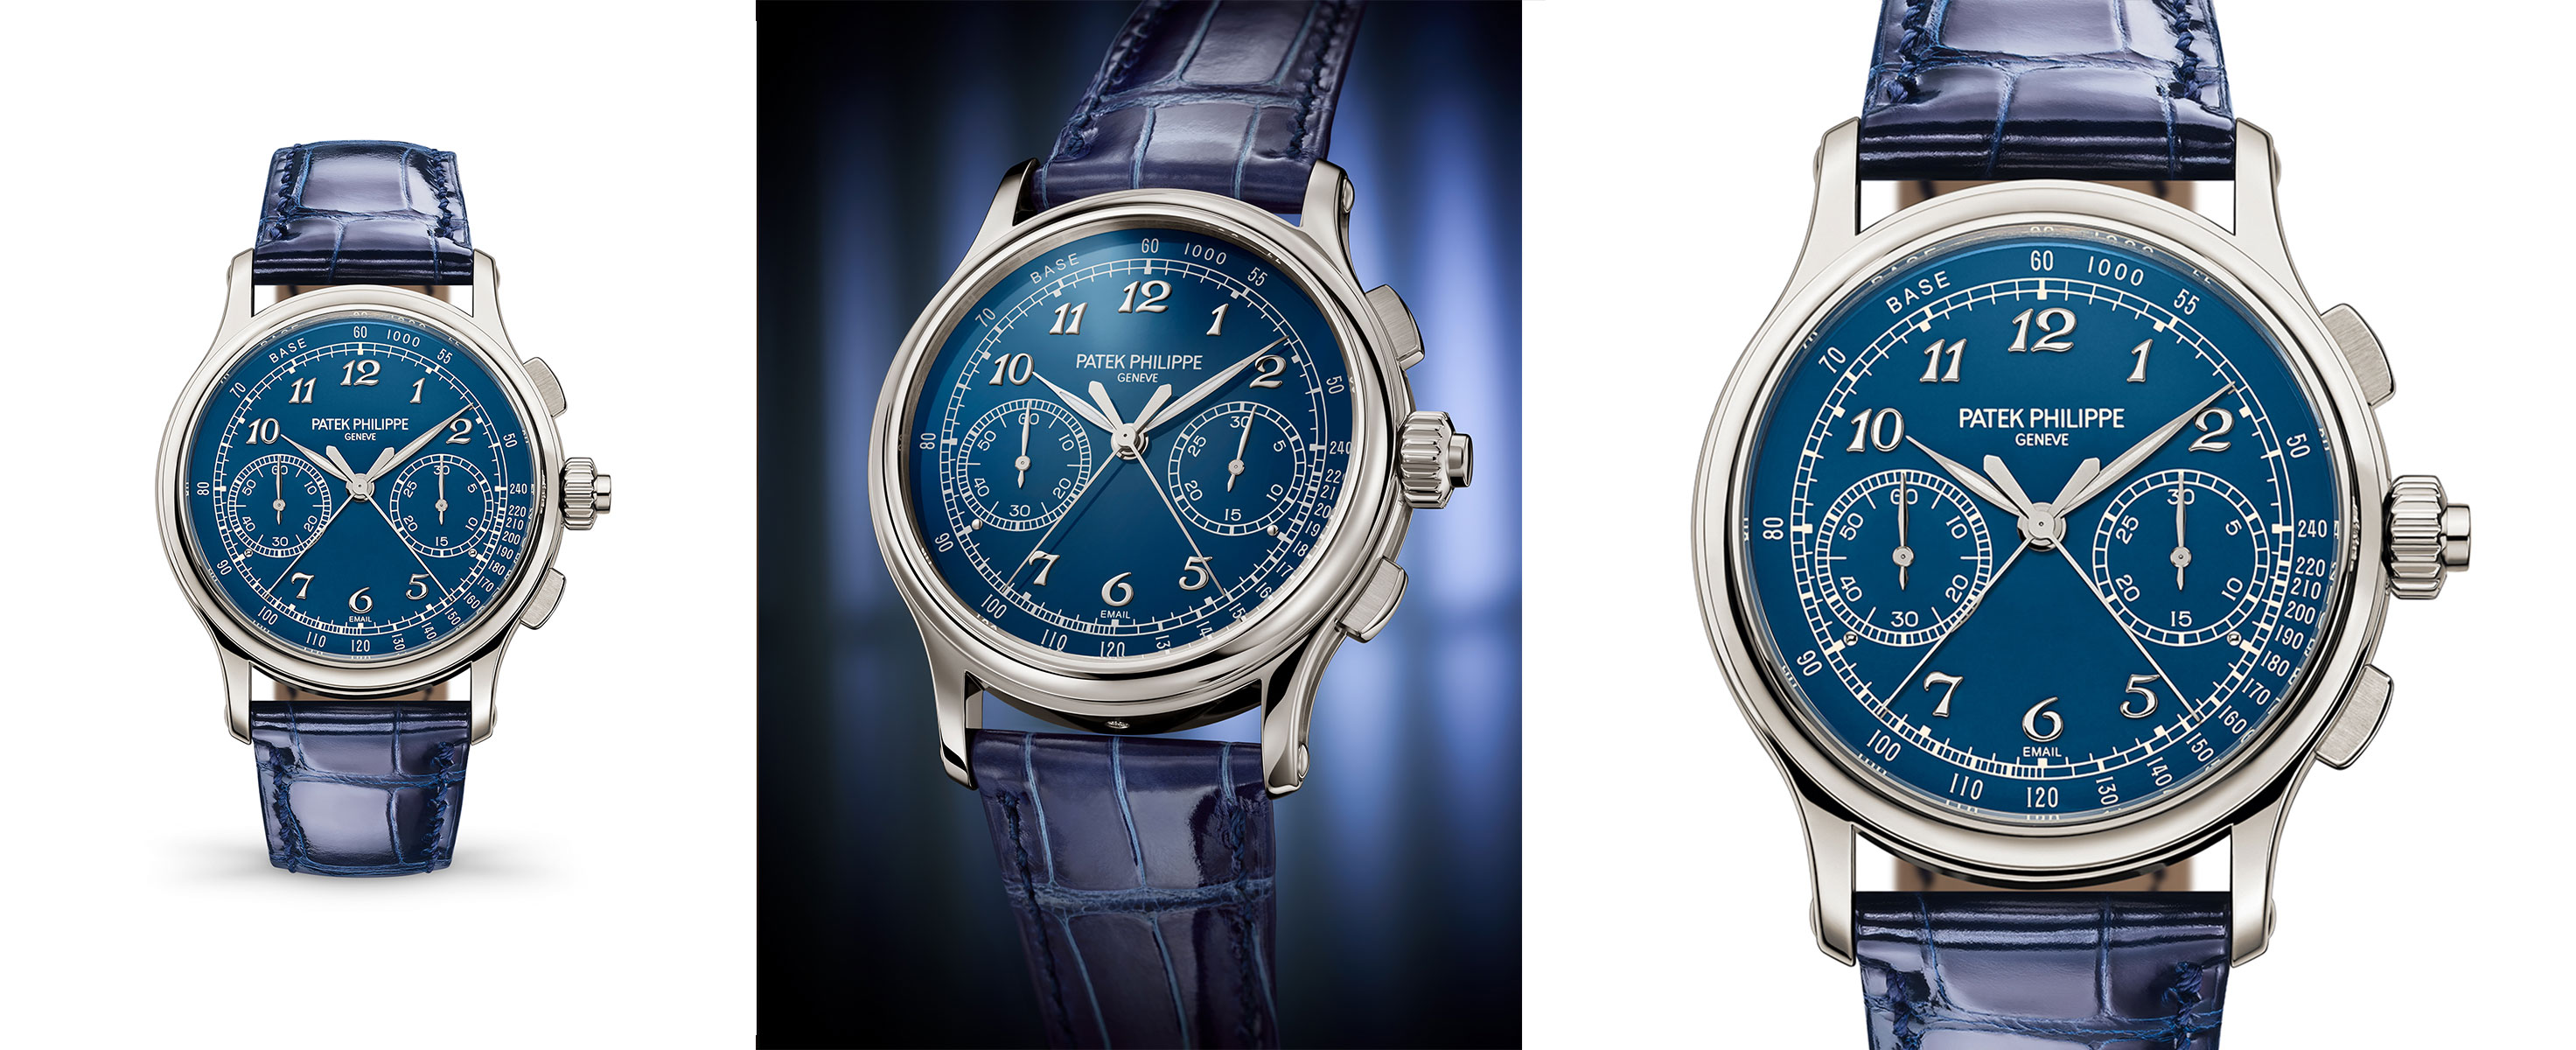 Three new grand complications Ref. 5370P-011 Split-Seconds Chronograph